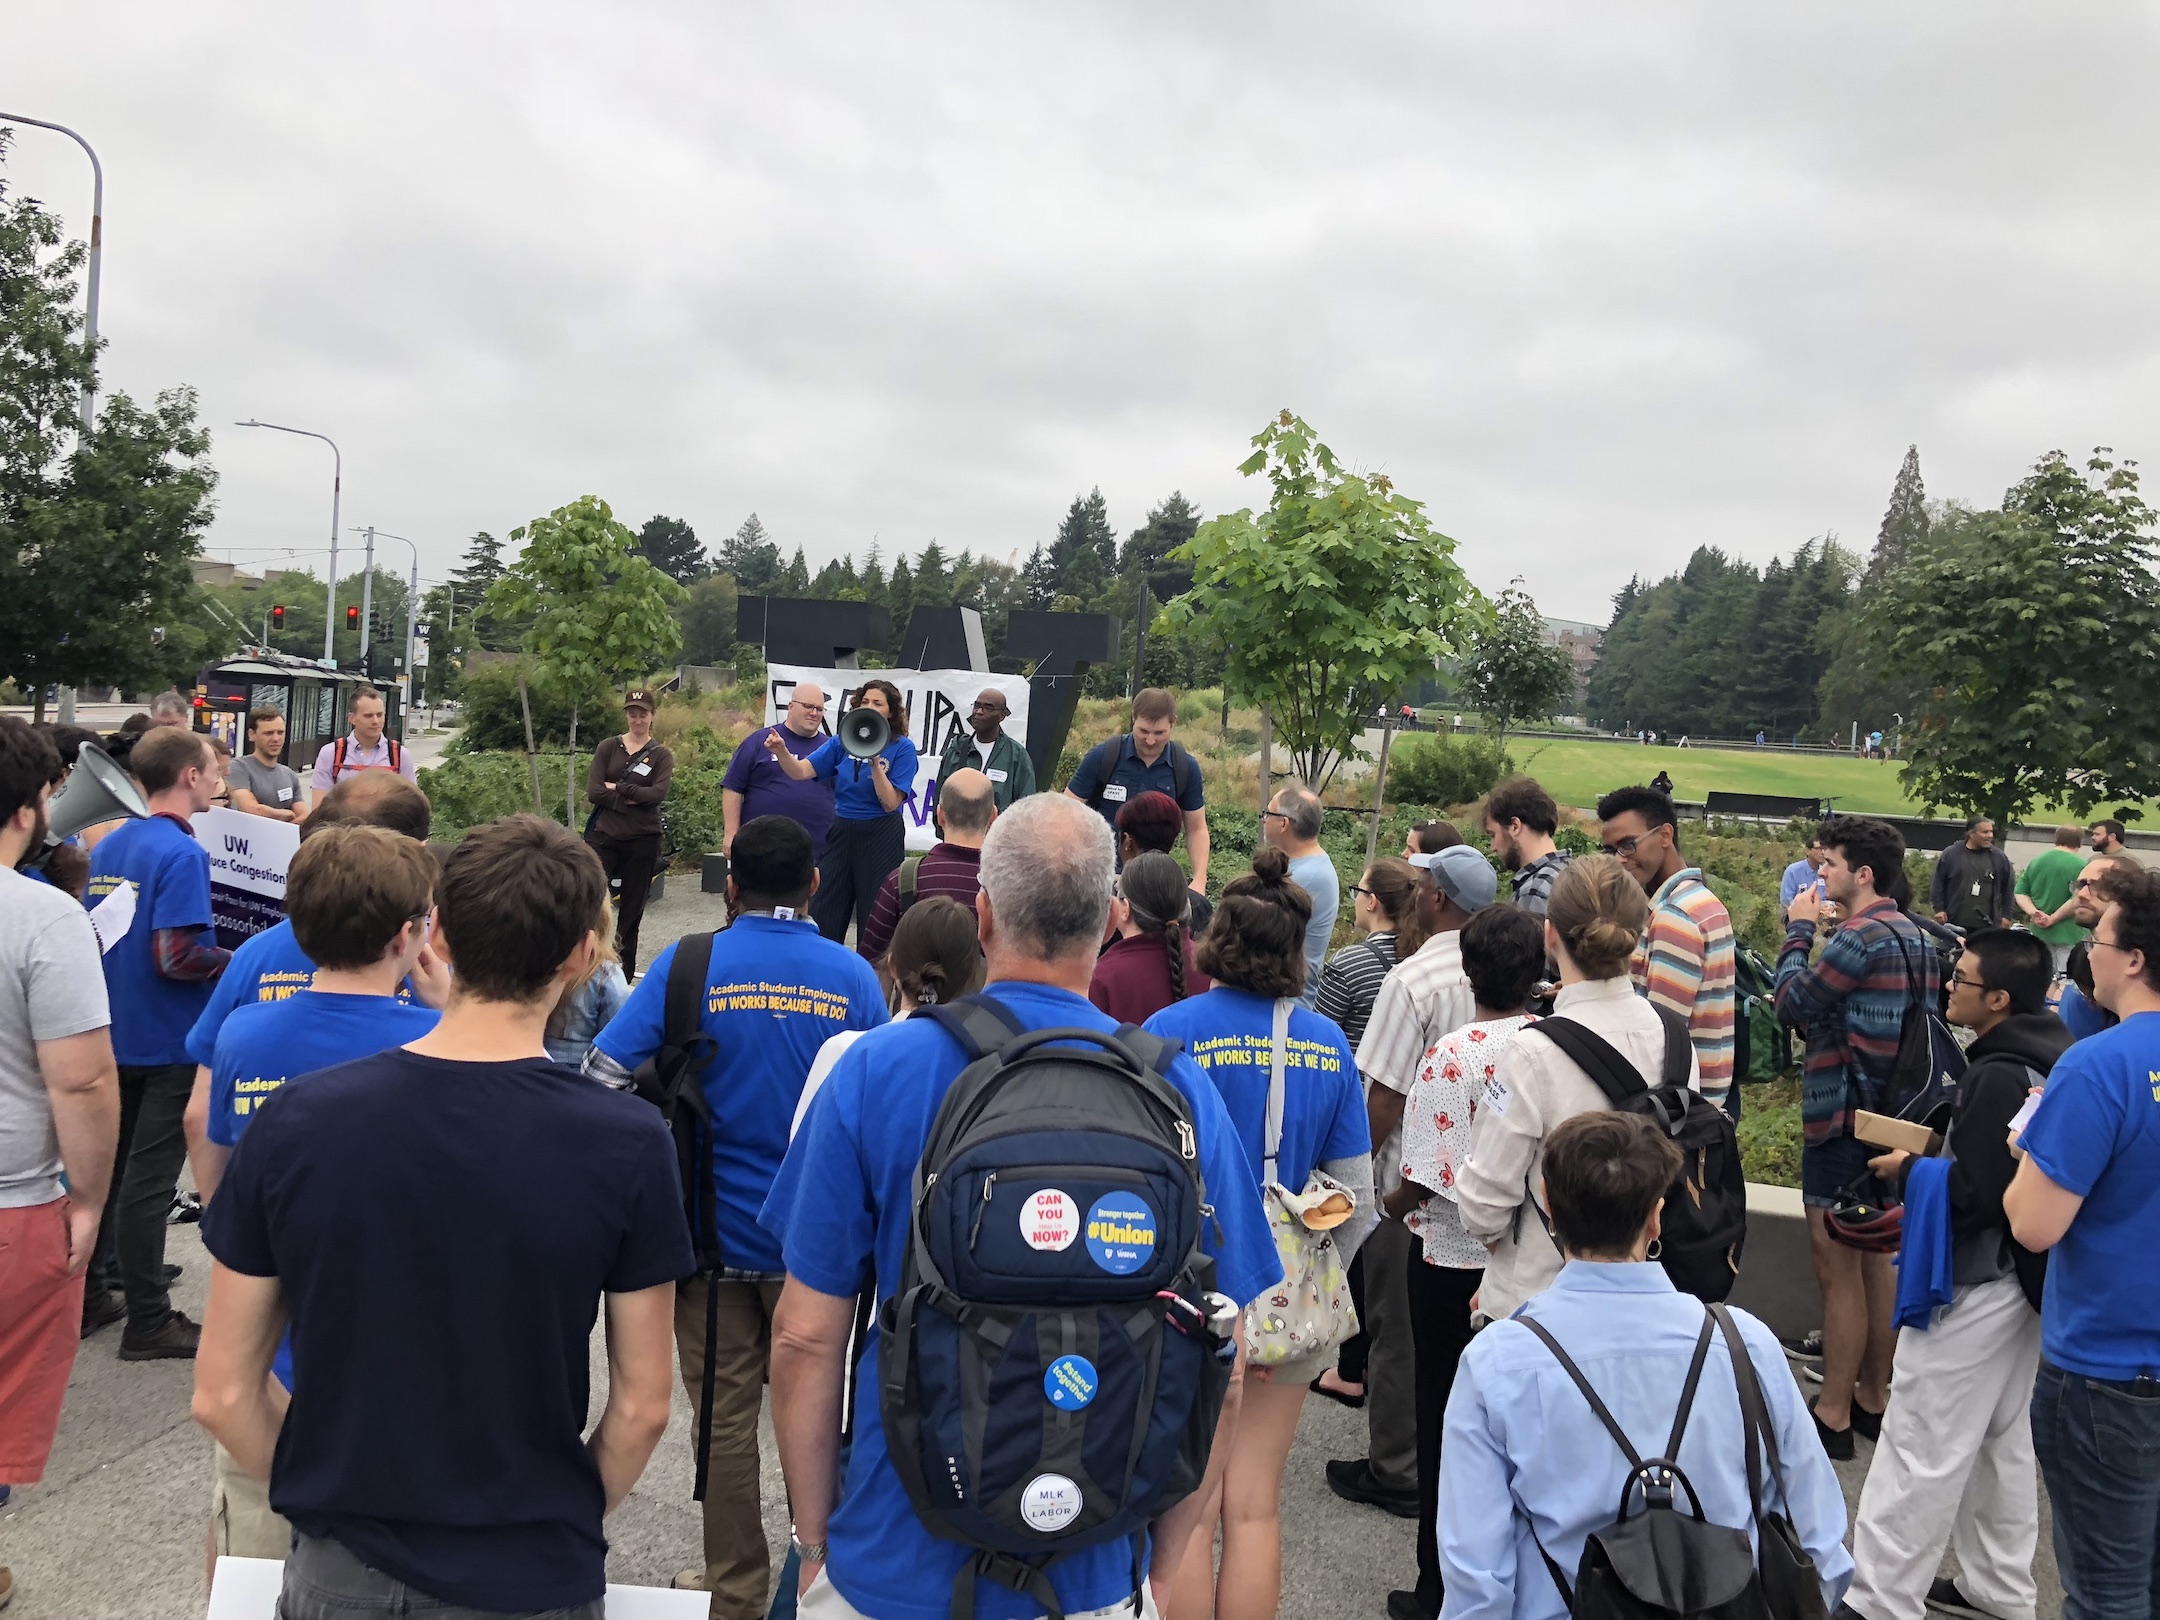 4121 members join union members from across campus for a rally to demand a subsidized UPASS for all